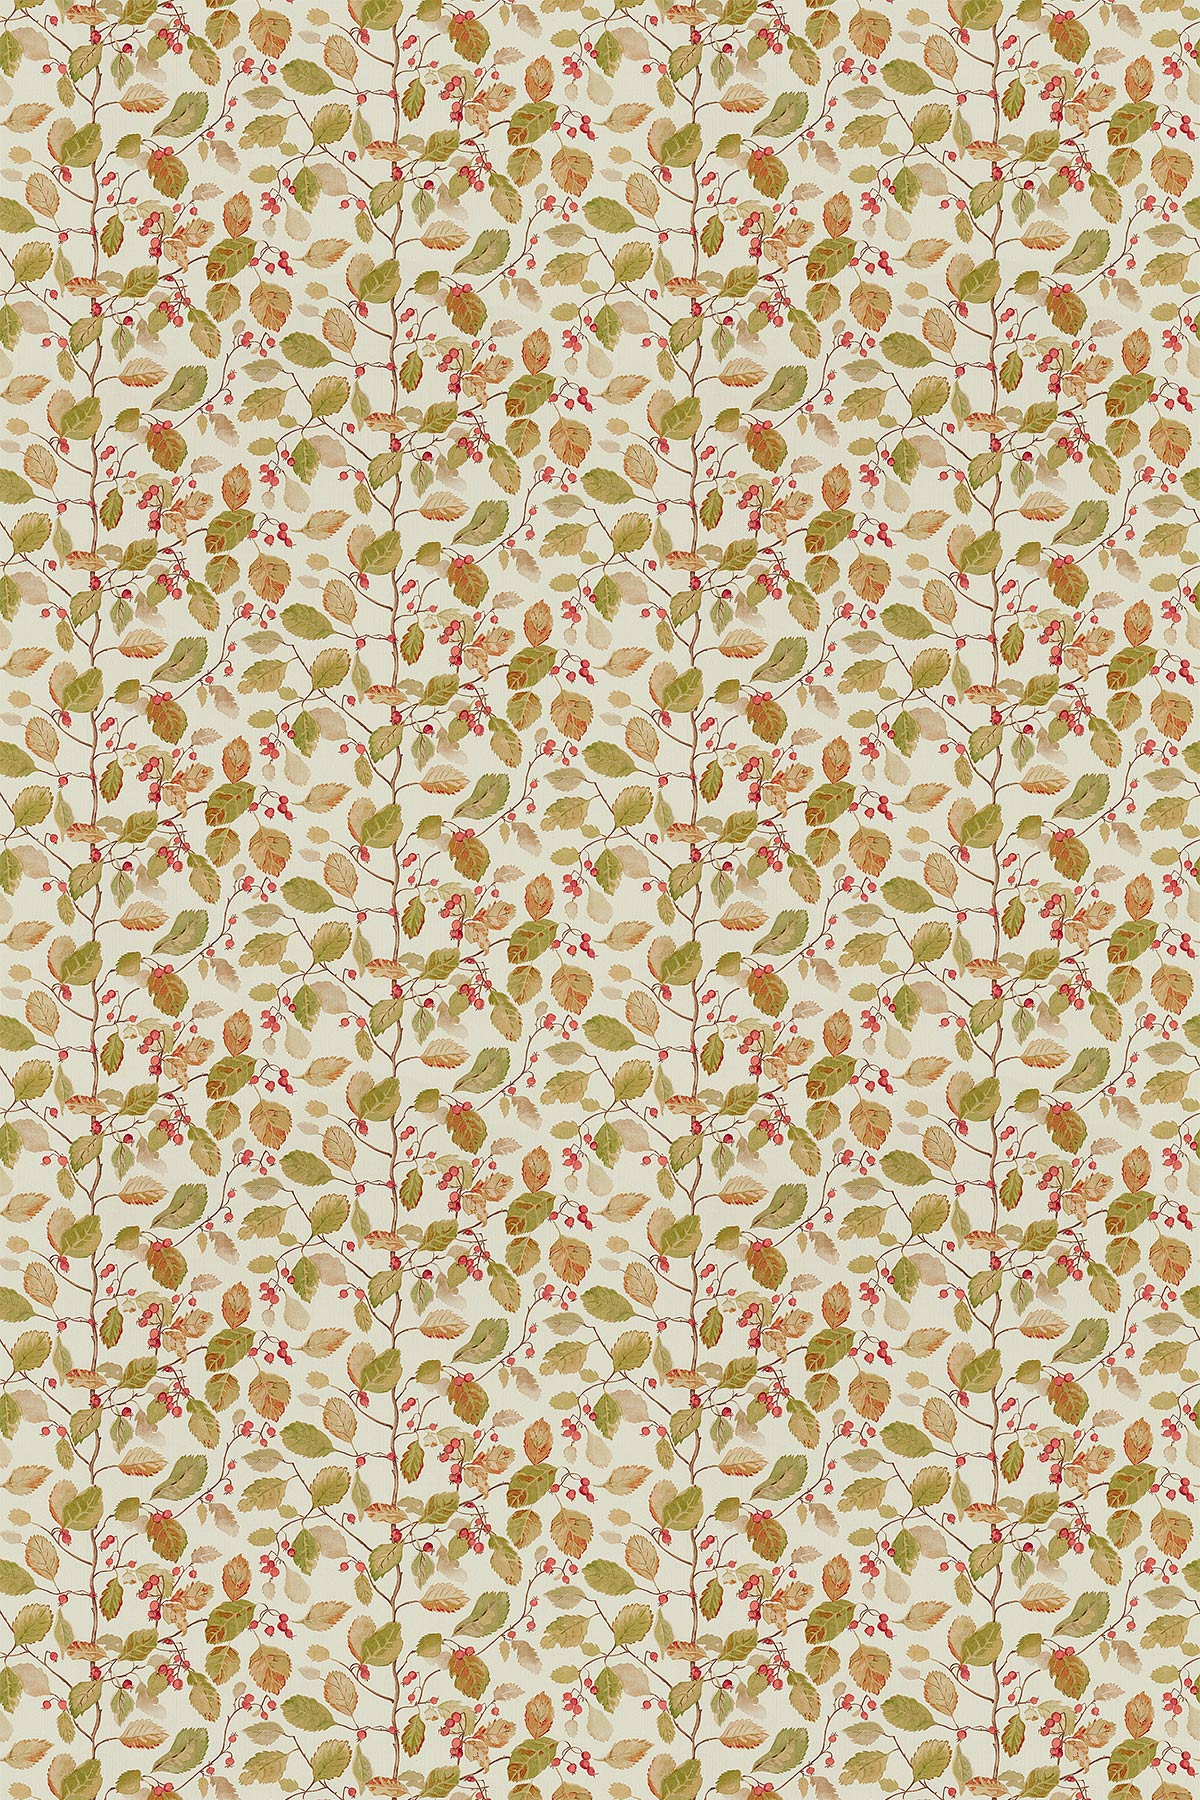 Woodland Berries Fabric - Rosehip / Moss - by Sanderson